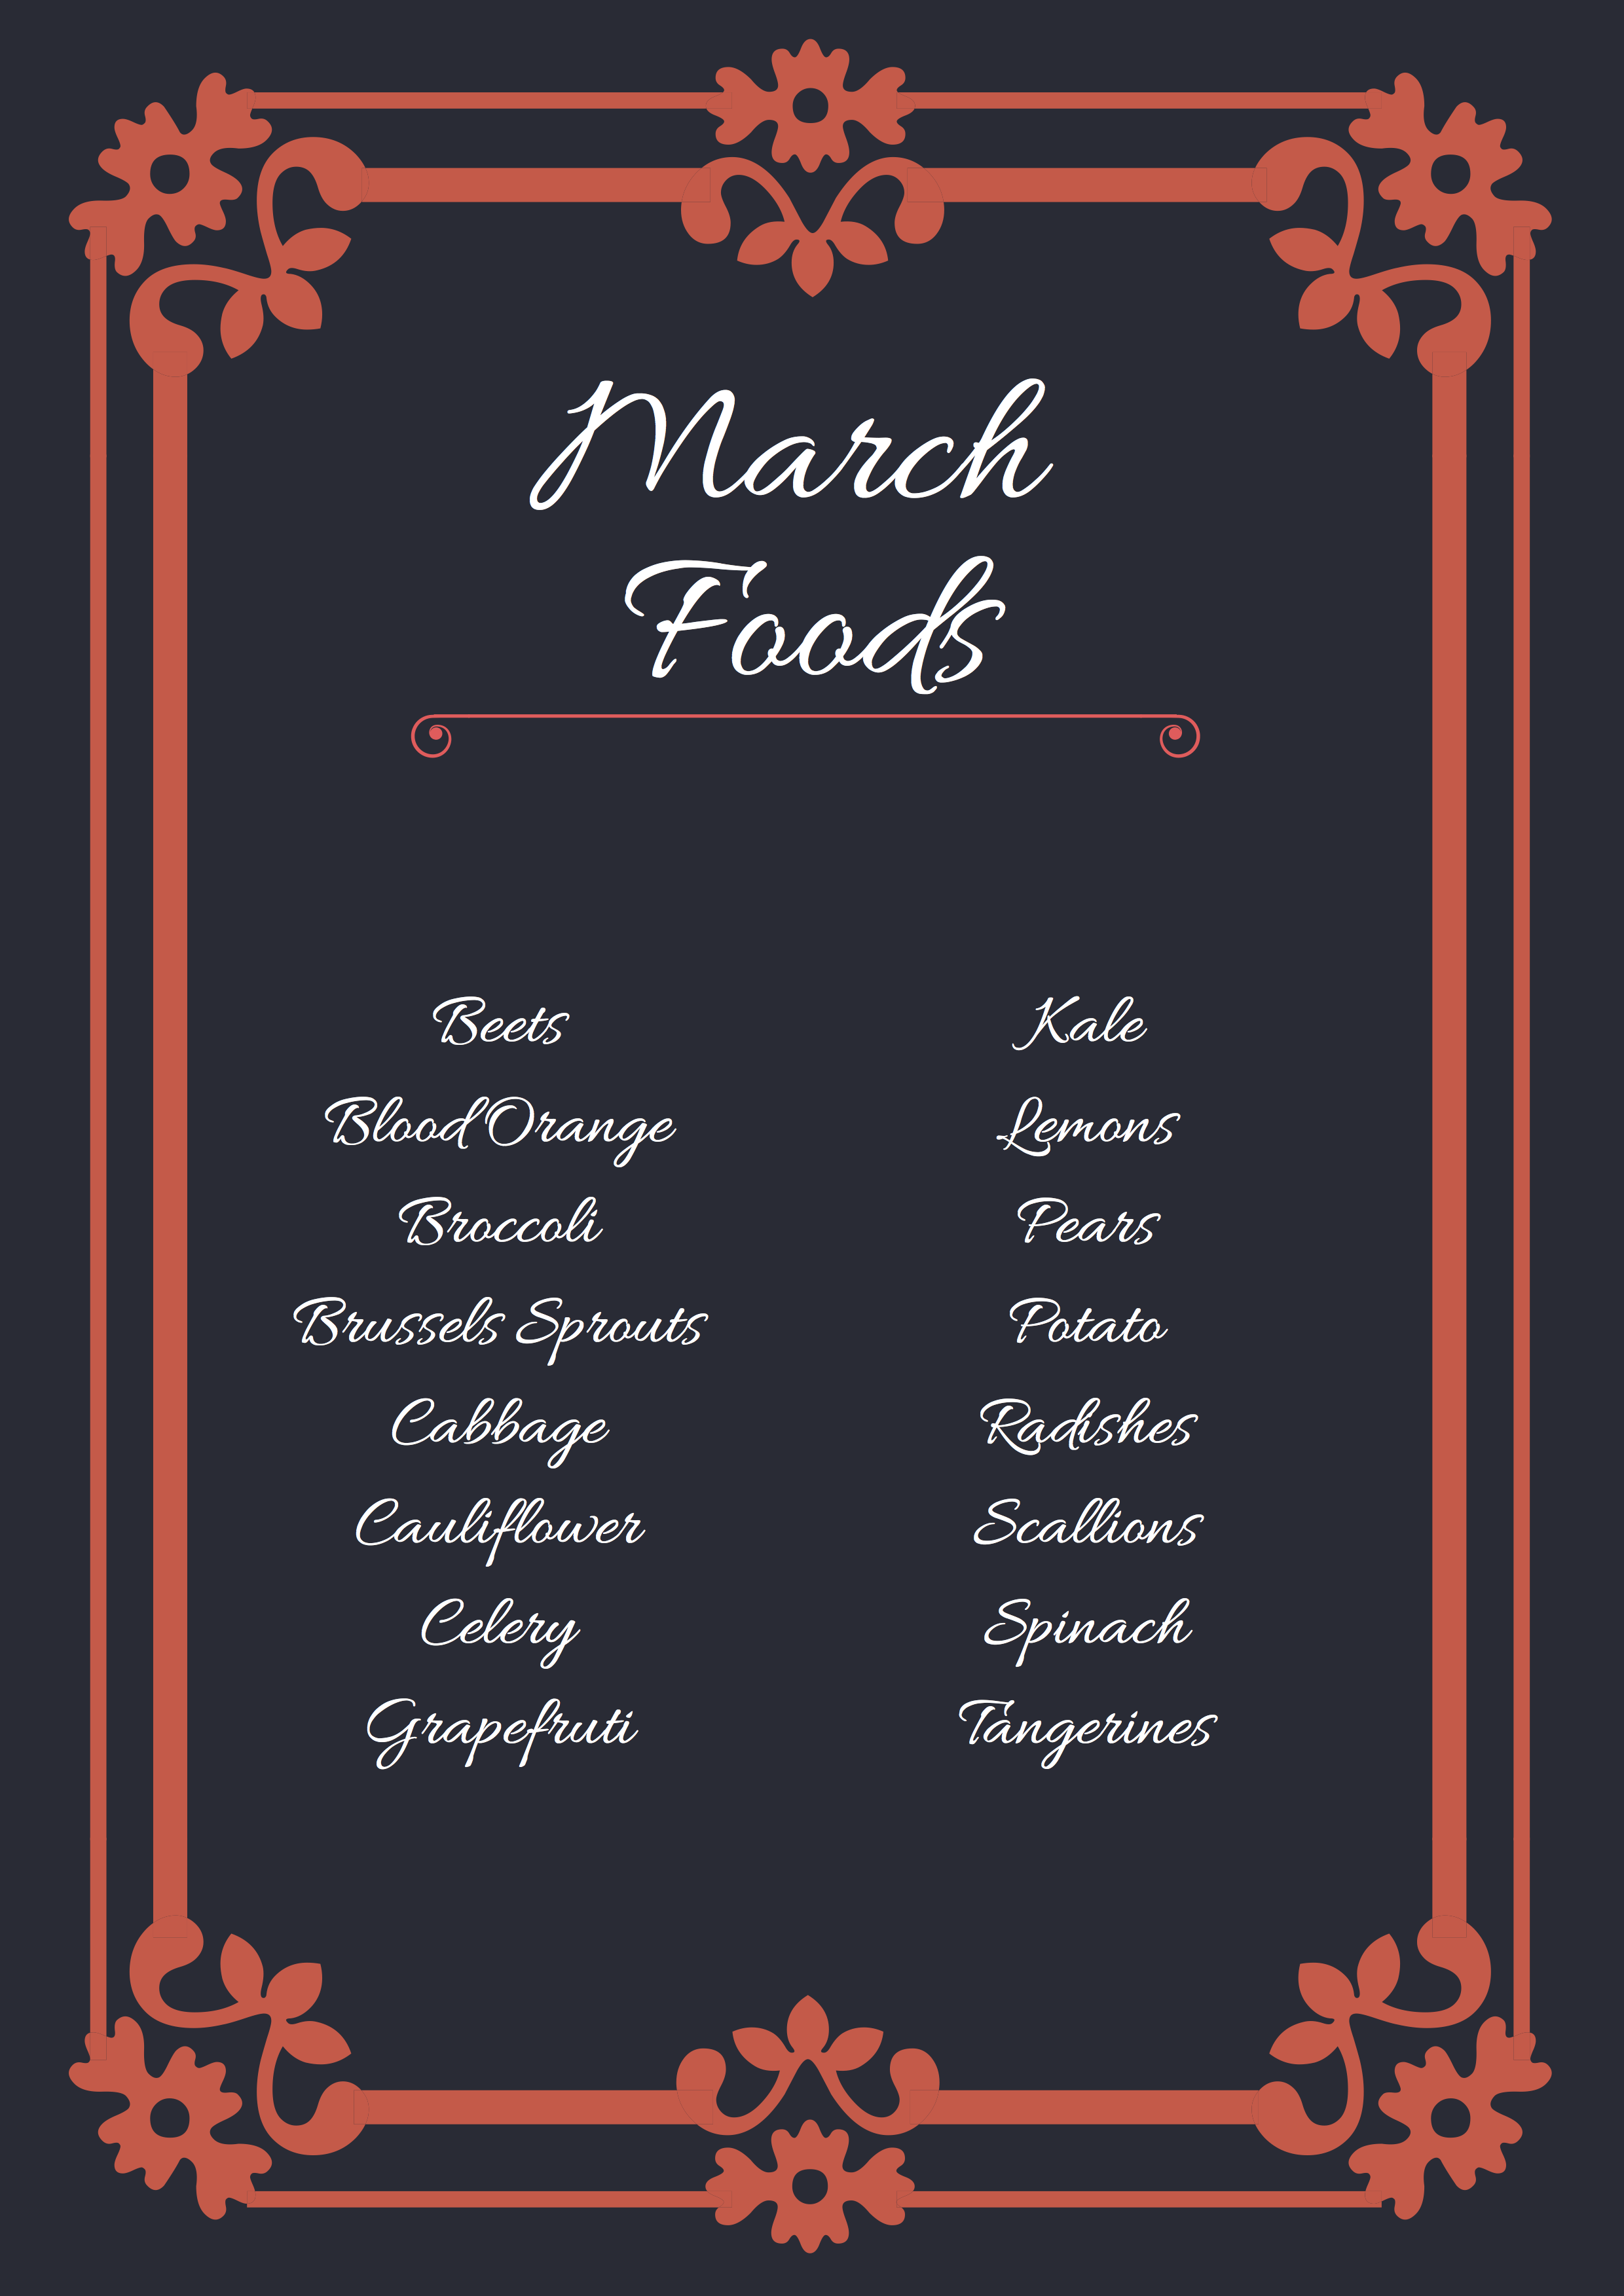 march foods.png